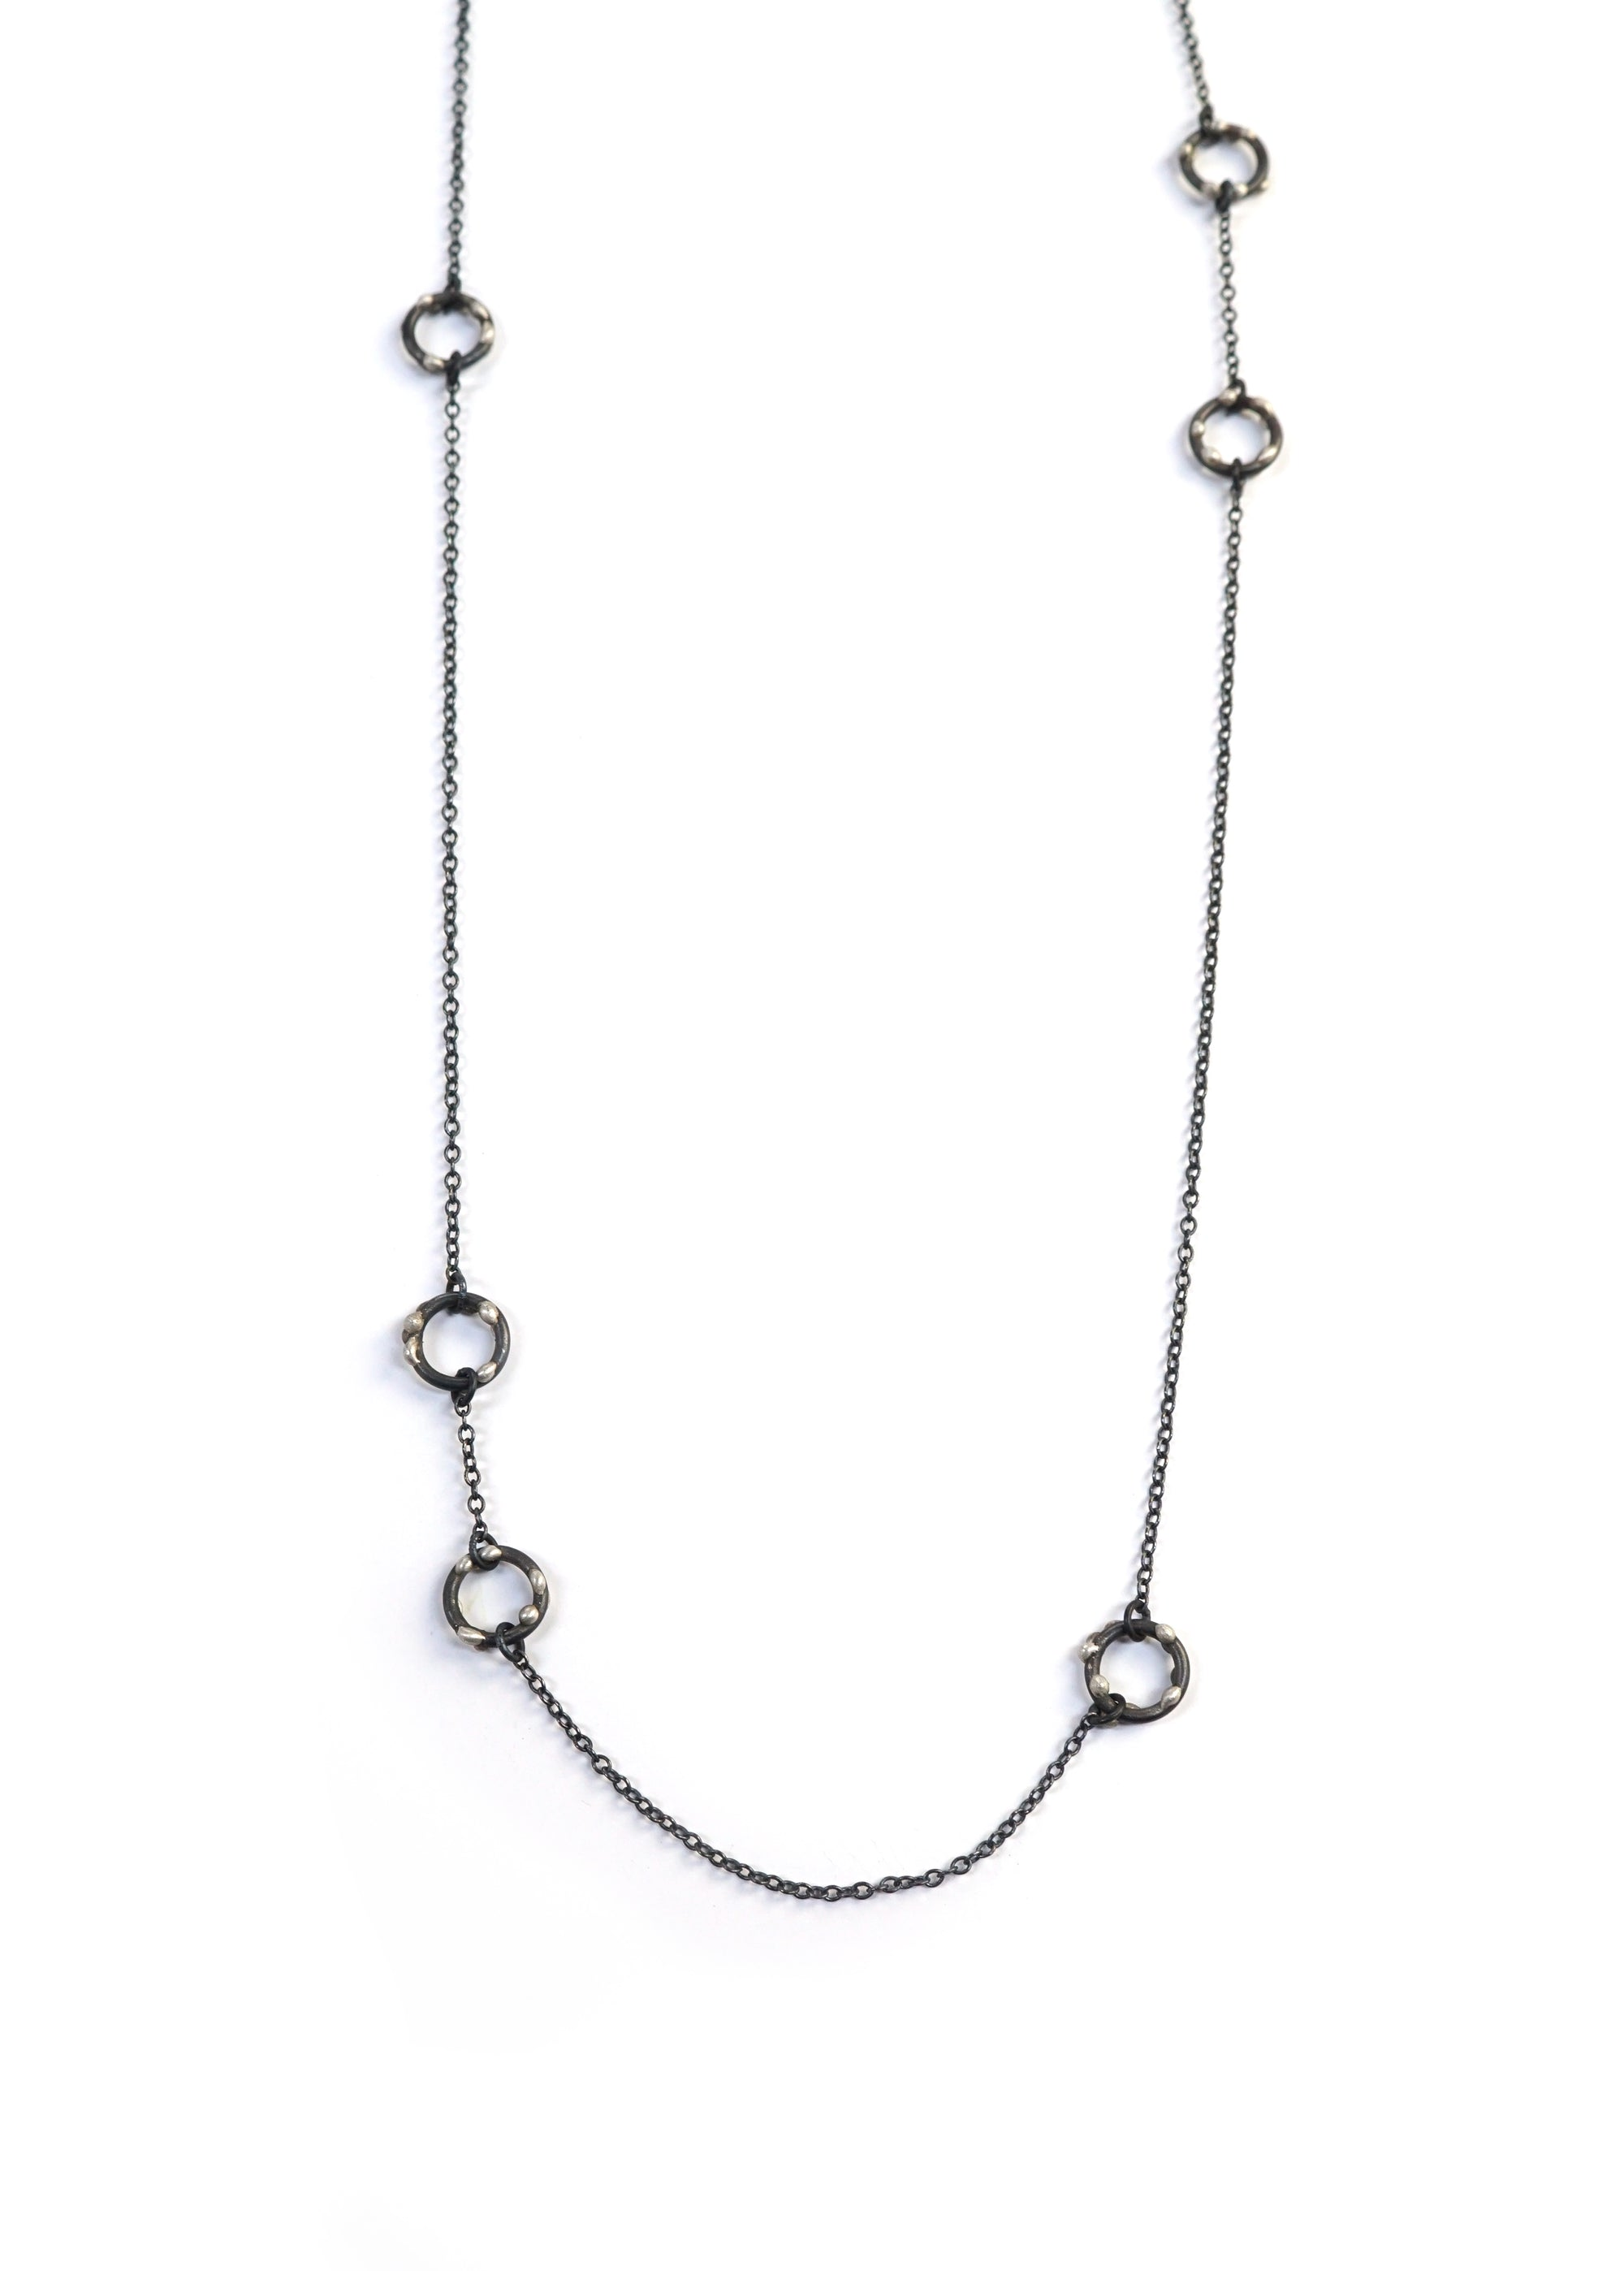 Alma Necklace - Silver on Steel